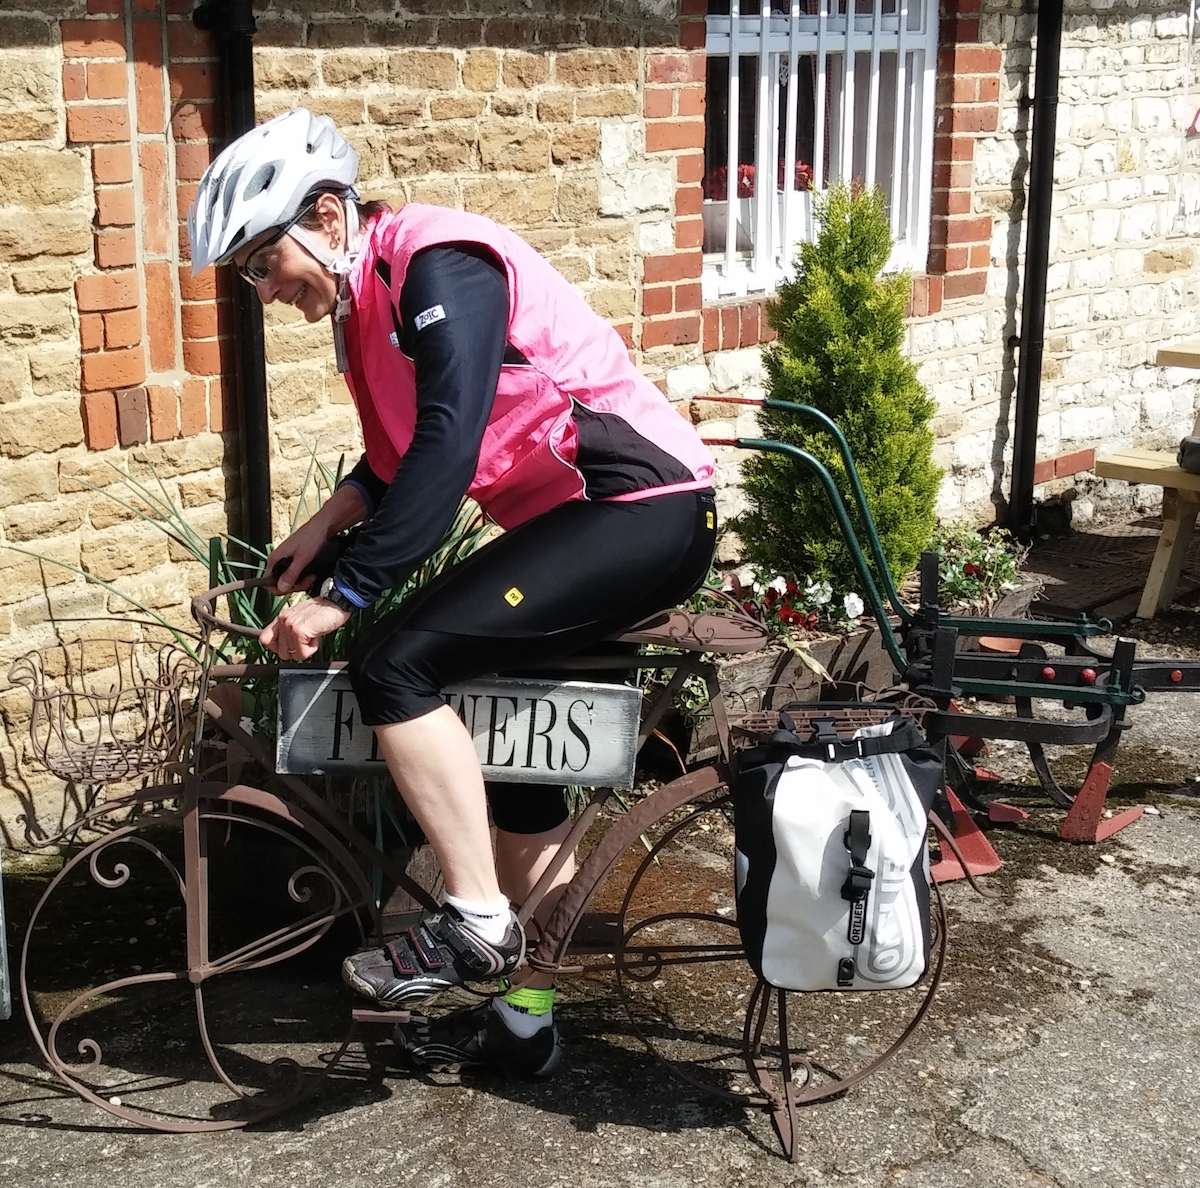 2014-04-30 Loiuse finds a puncture proof bike at last